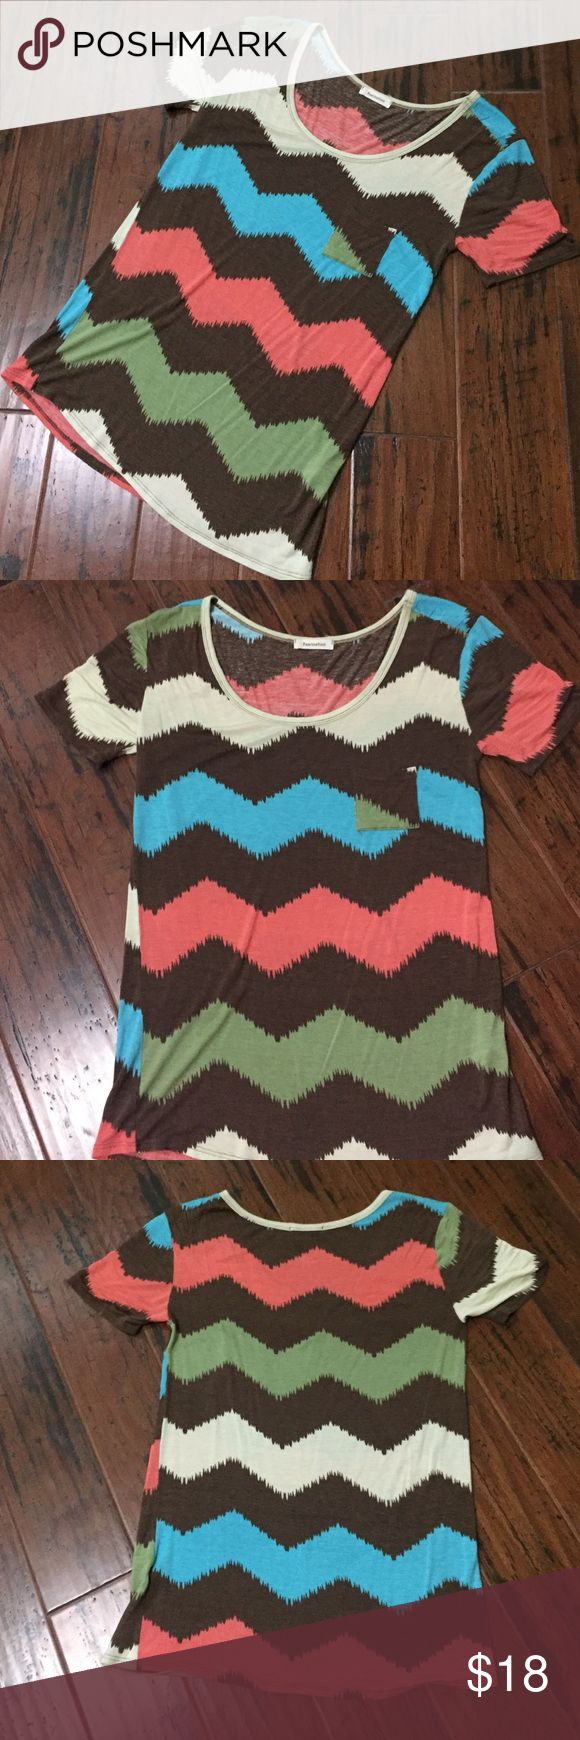 Chevron pocket tee NWOT Very cute chevron tee with pocket.  Brand is fascination but purchased through filly flair.  Love it but unfortunately not a lot of boutiques sale stuff that fit us petite girls and this was just too big for me. Tops Tees - Short Sleeve